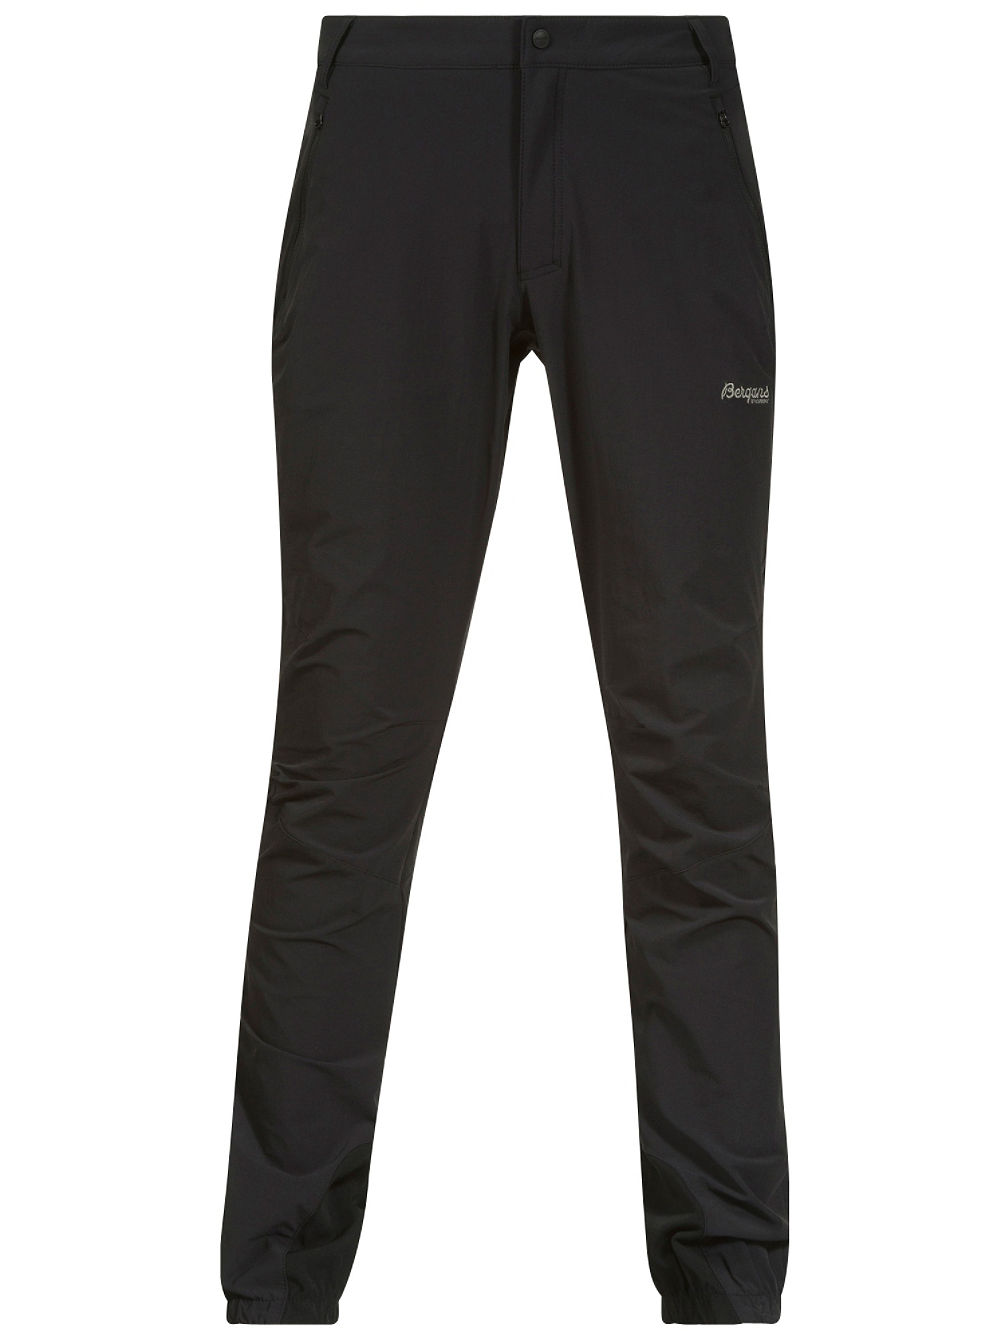 Bera Outdoor Pants